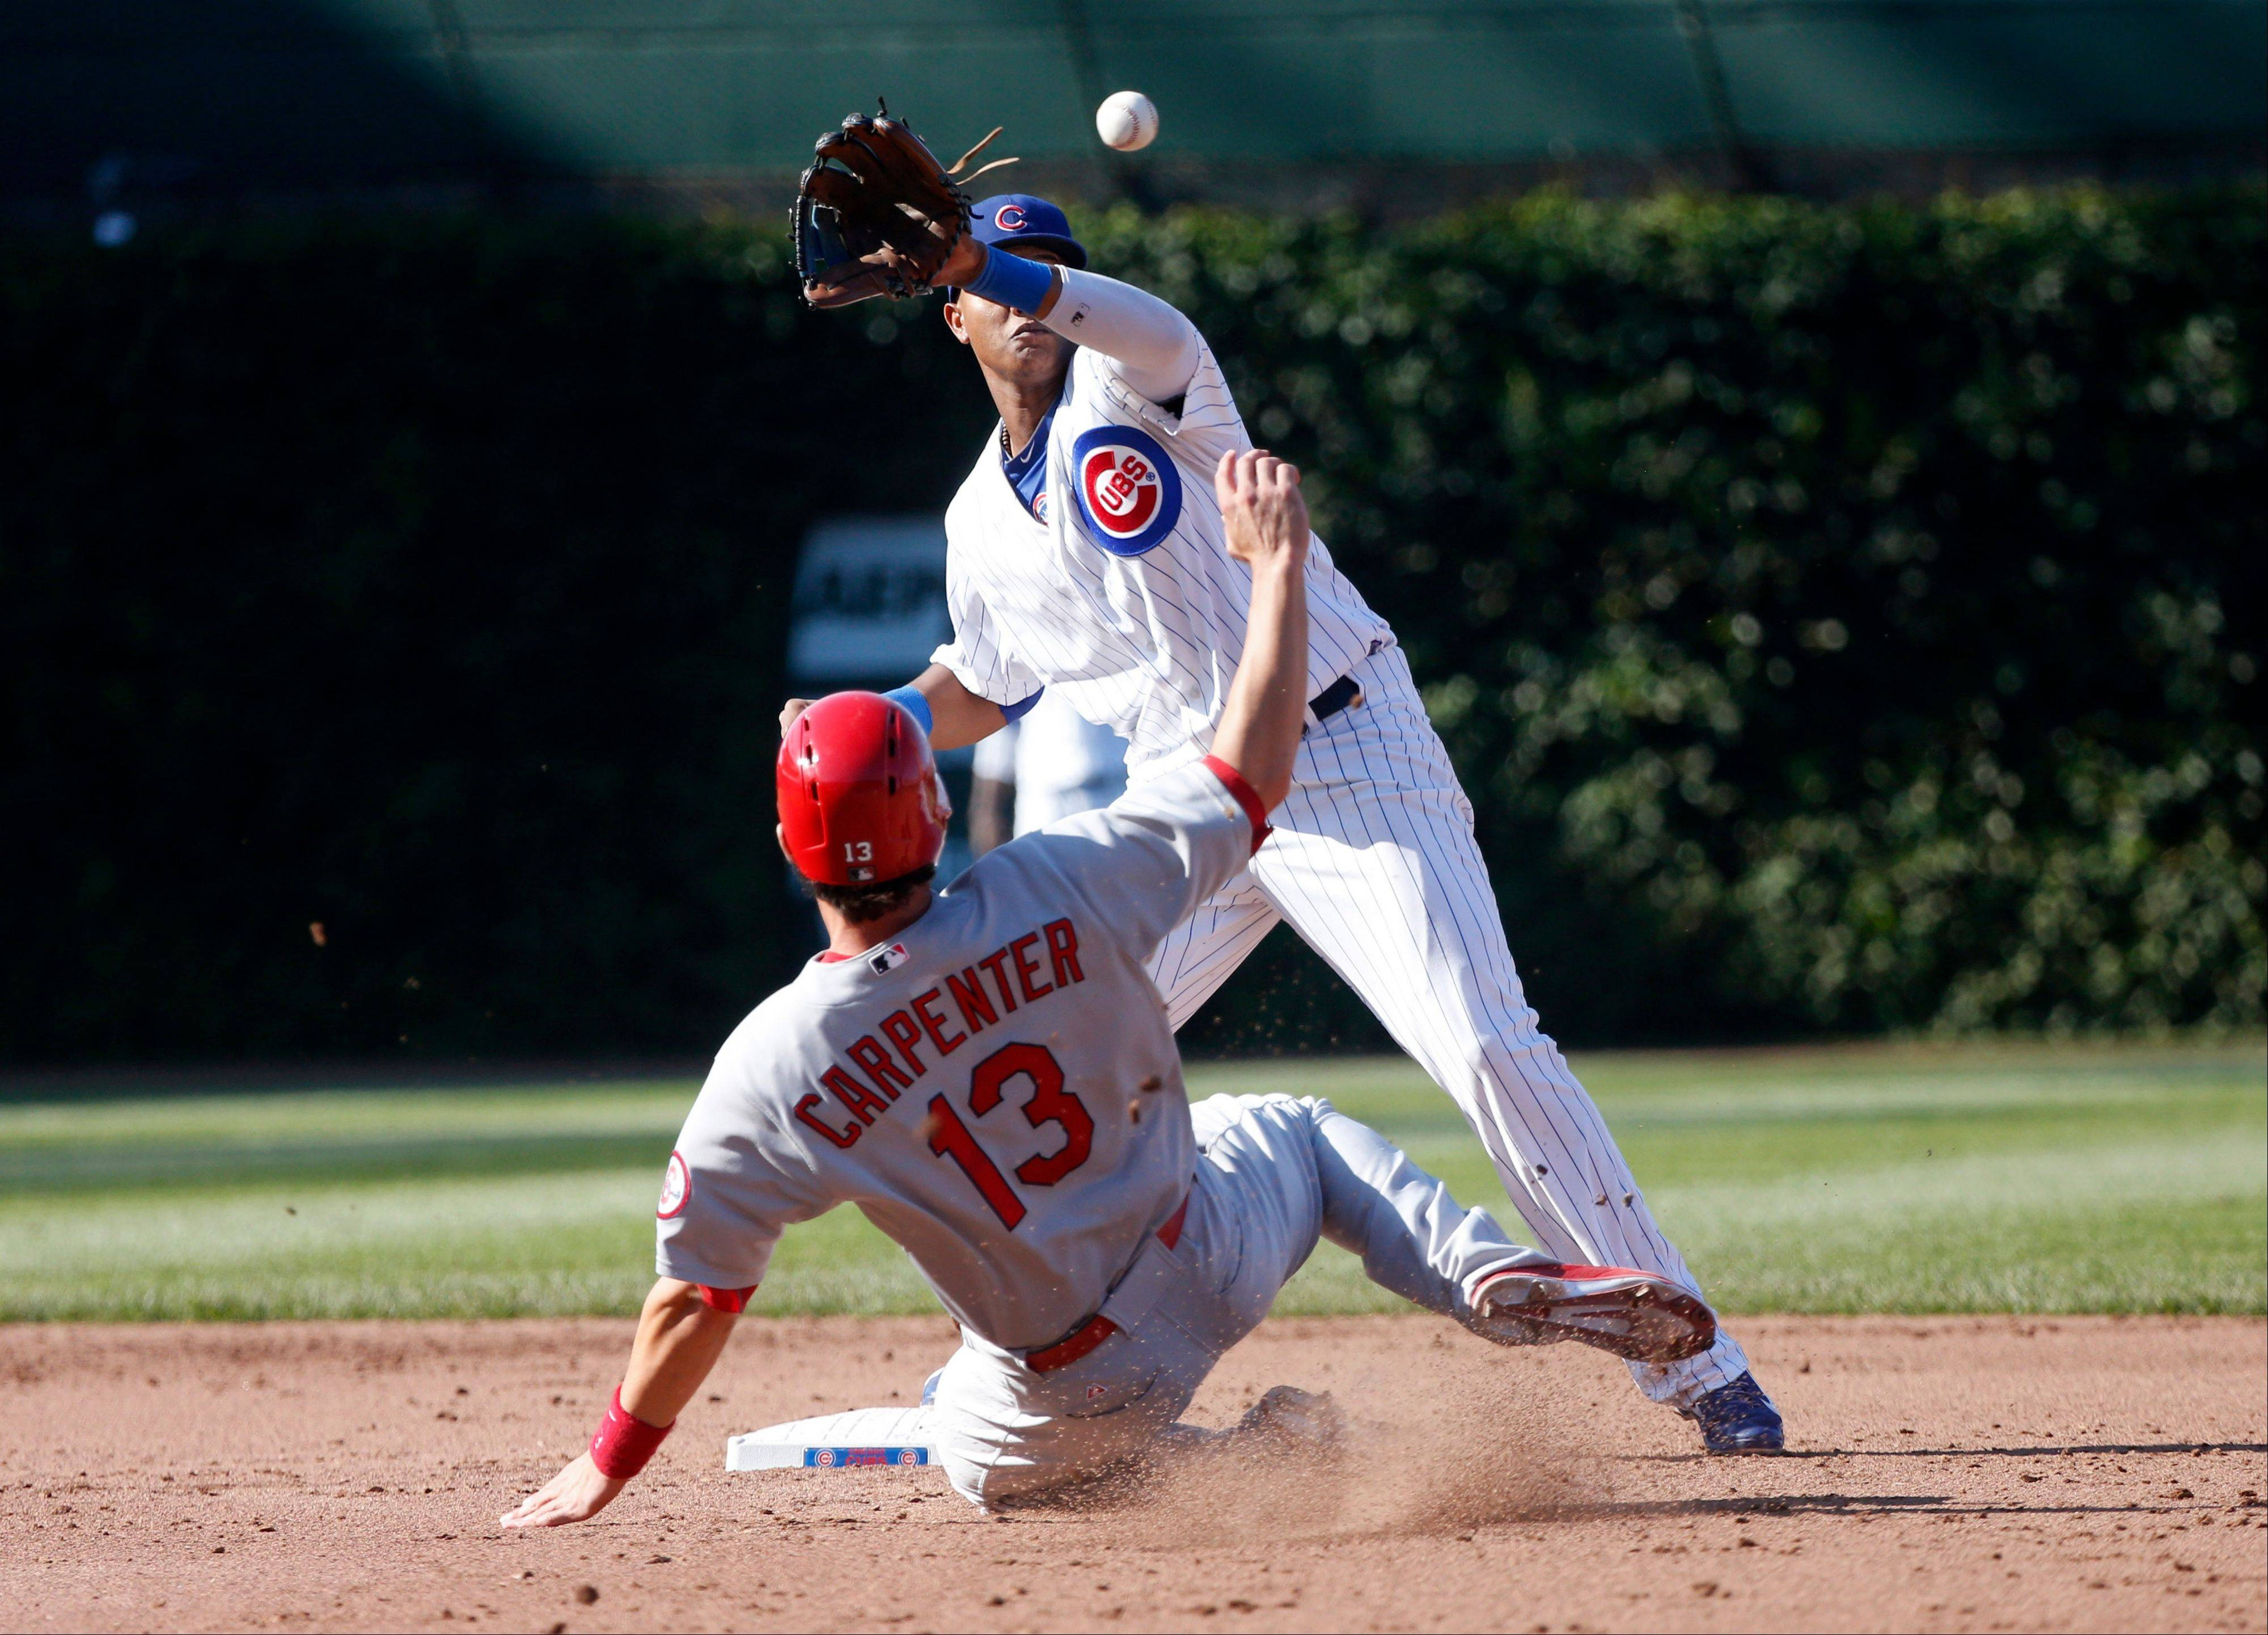 Chicago Cubs shortstop Starlin Castro, top, takes a high throw from second baseman Darwin Barney and forces out St. Louis Cardinals' Matt Carpenter (13) out at second during the sixth inning of a baseball game on Friday, Aug. 16, 2013, in Chicago.